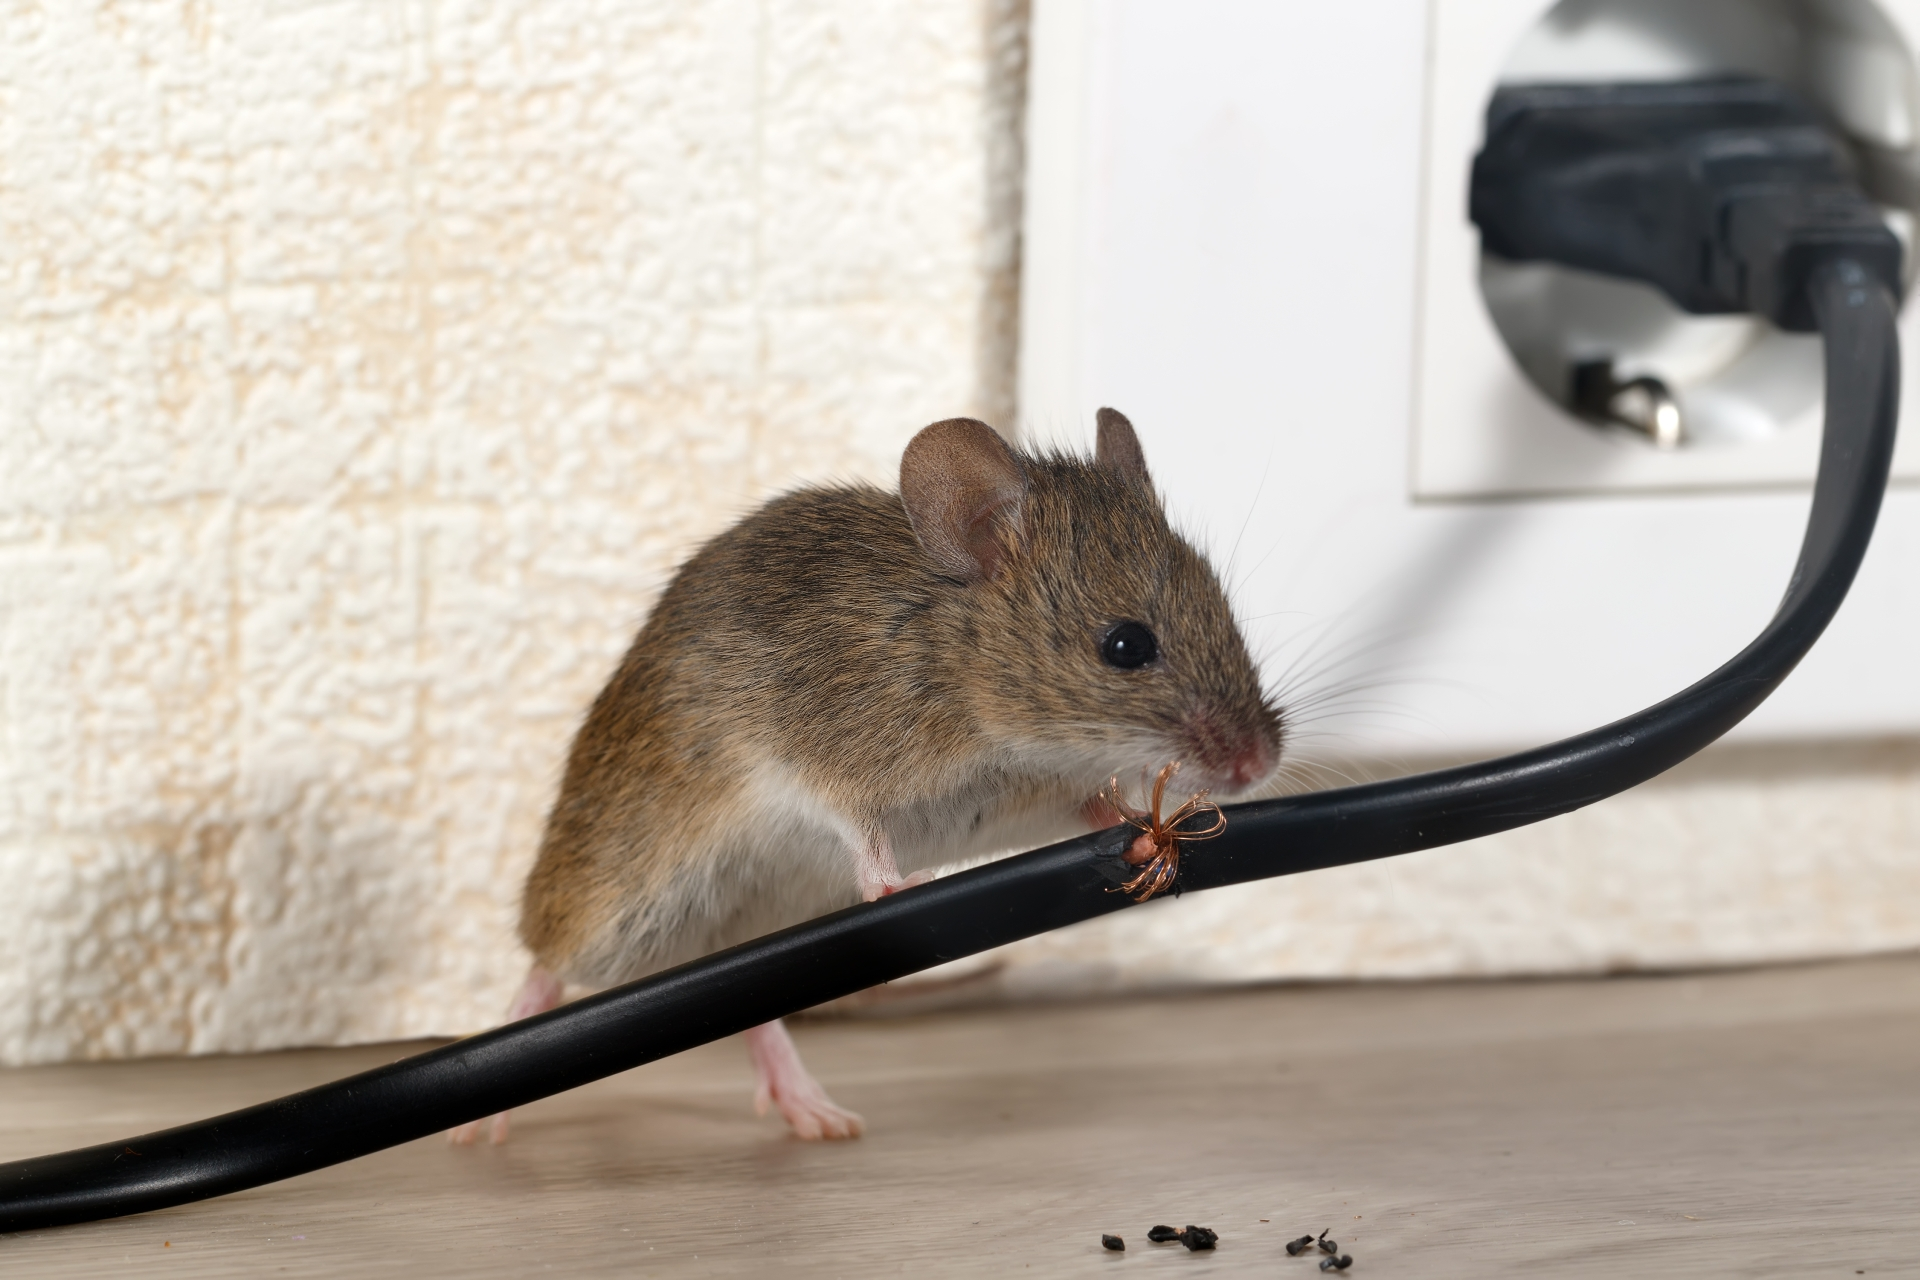 Mice Infestation, Pest Control in Kensal Green, NW10. Call Now 020 8166 9746